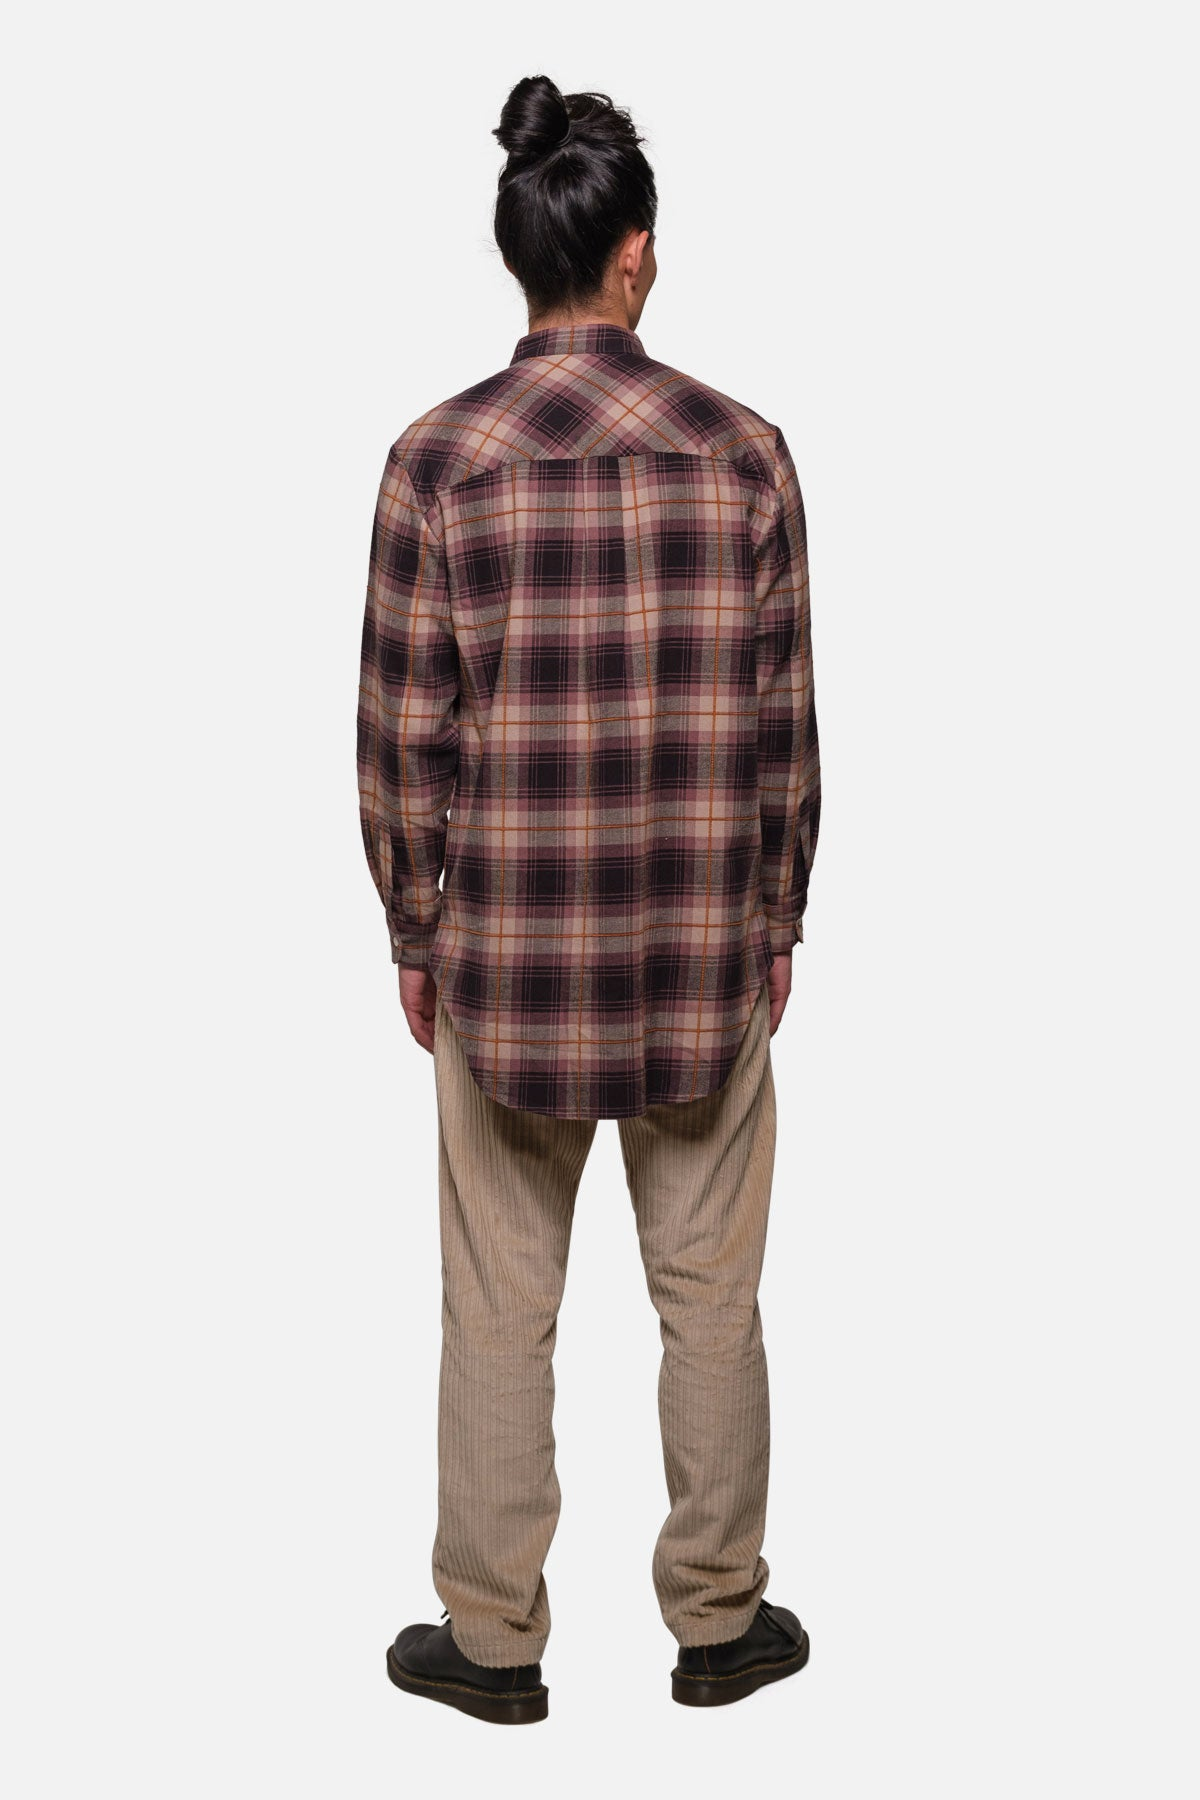 SHOREDITCH TUNIC IN PURPLE WINDOWPANE PLAID - Fortune Goods